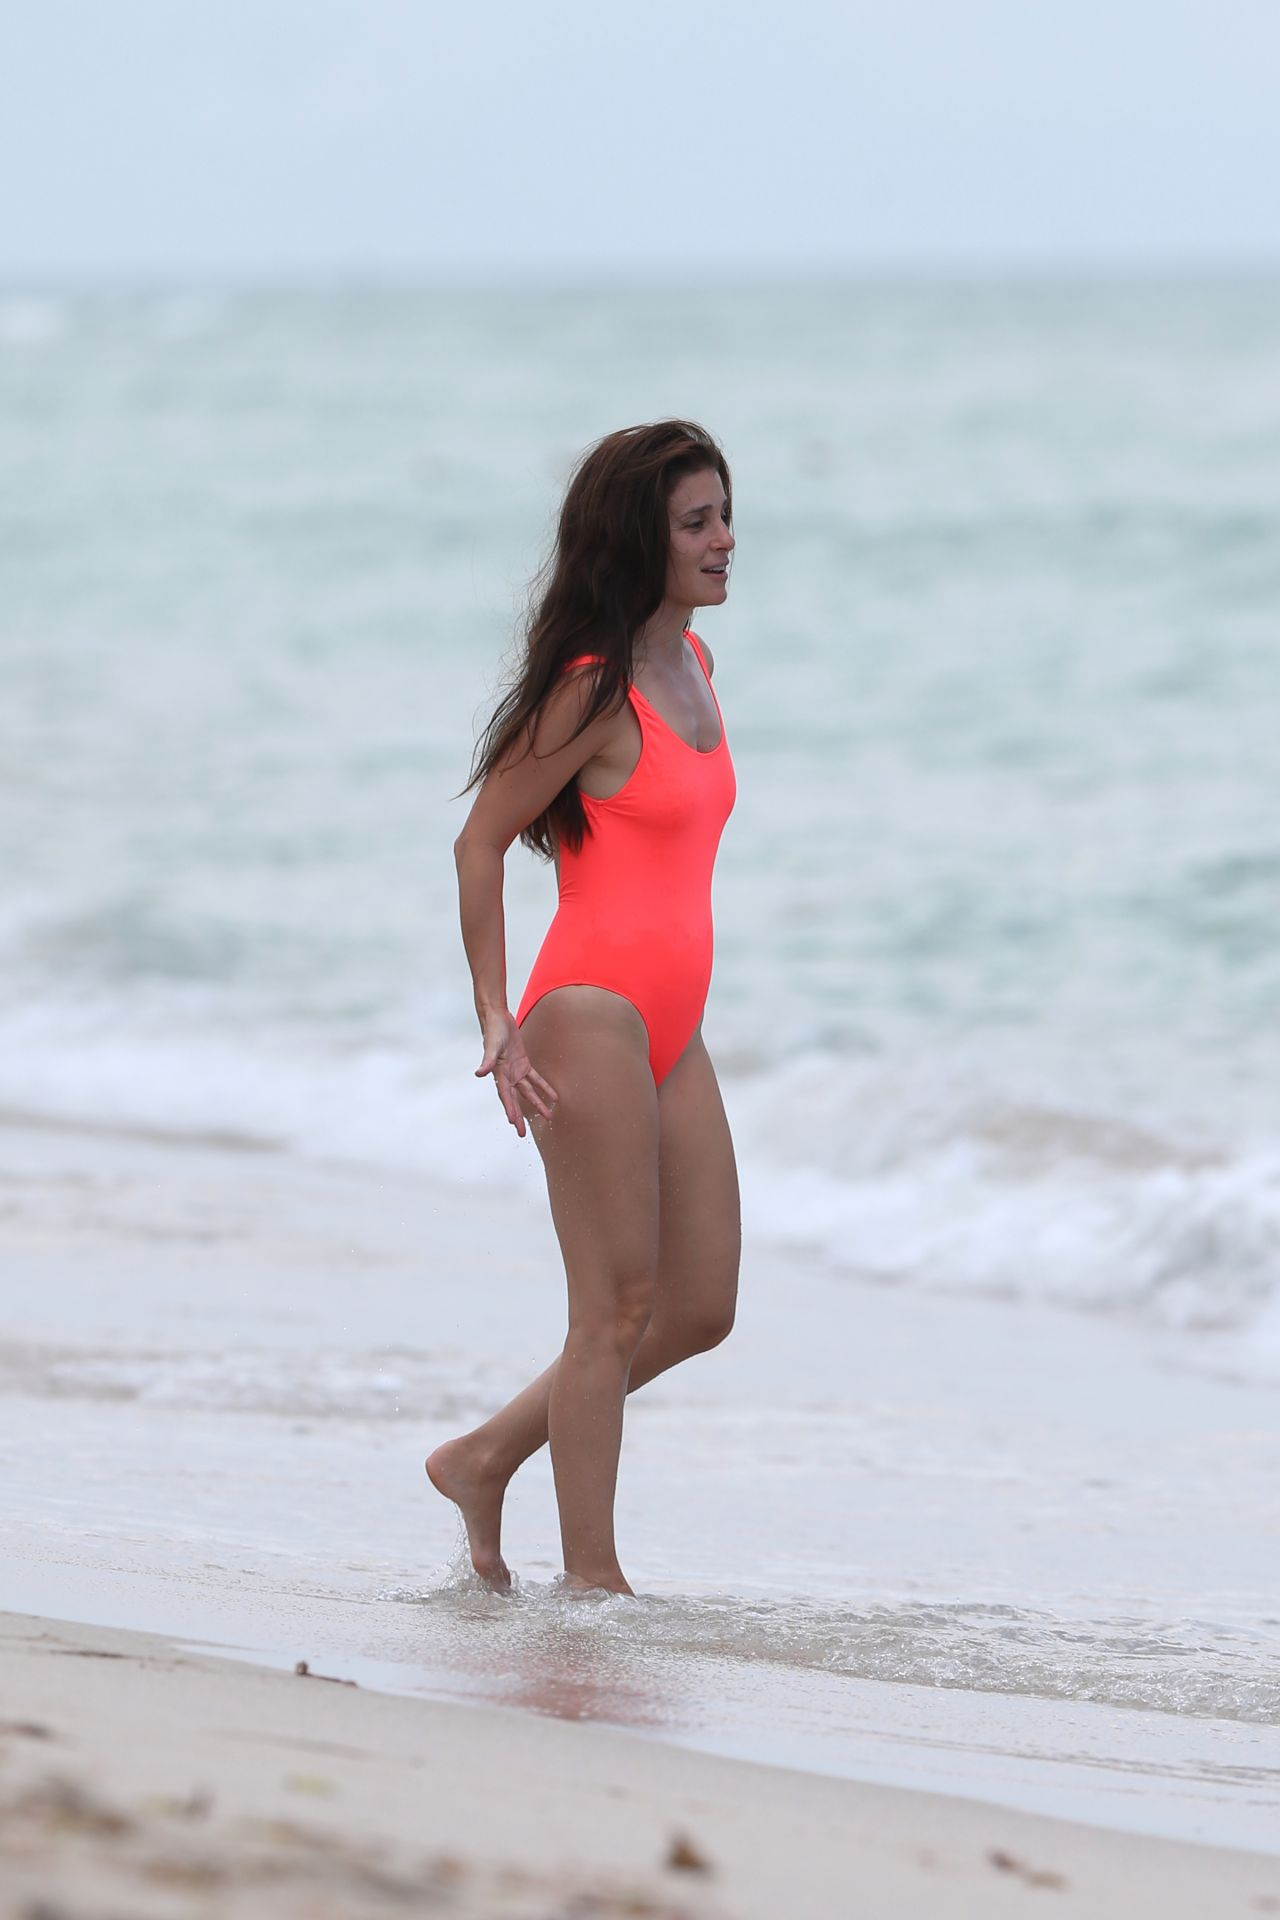 Shiri Appleby In Swimsuit At The Beach In Miami 09 23 2017